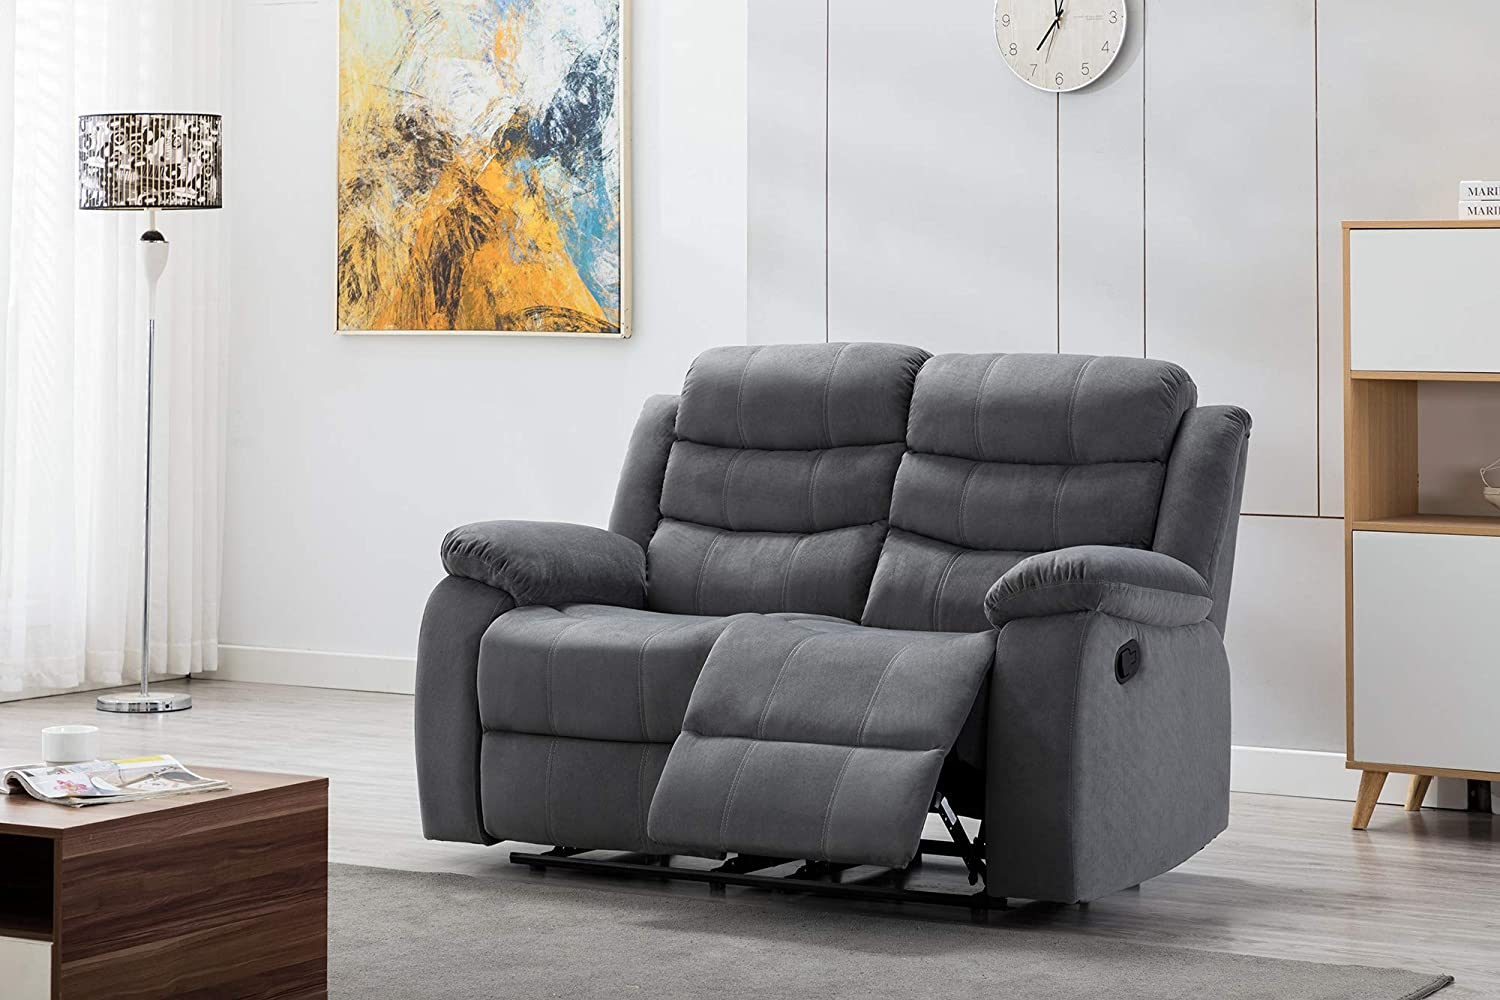 Top 7 Most Comfortable Reclining Sofa [ Buying Guide-2021 ] 7